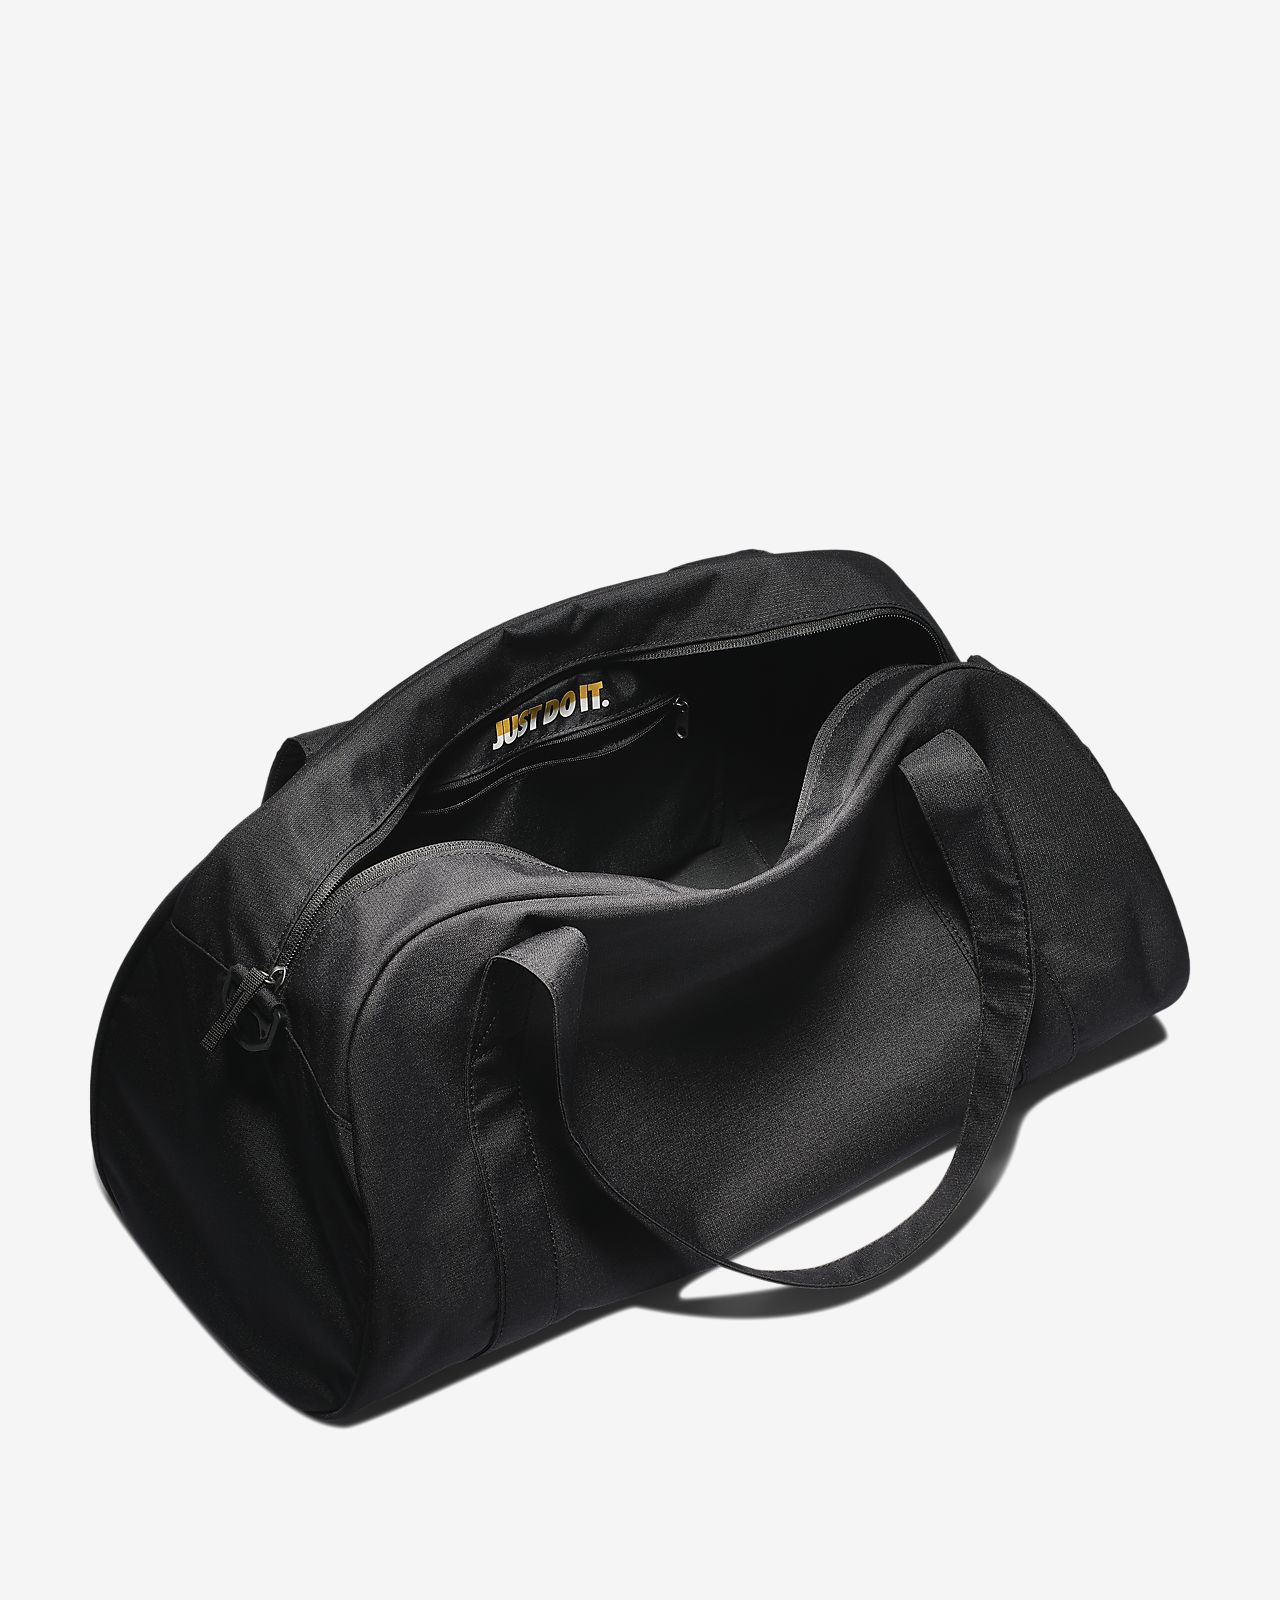 9e2484bec7 Nike Gym Club Women's Training Duffel Bag. Nike.com ZA